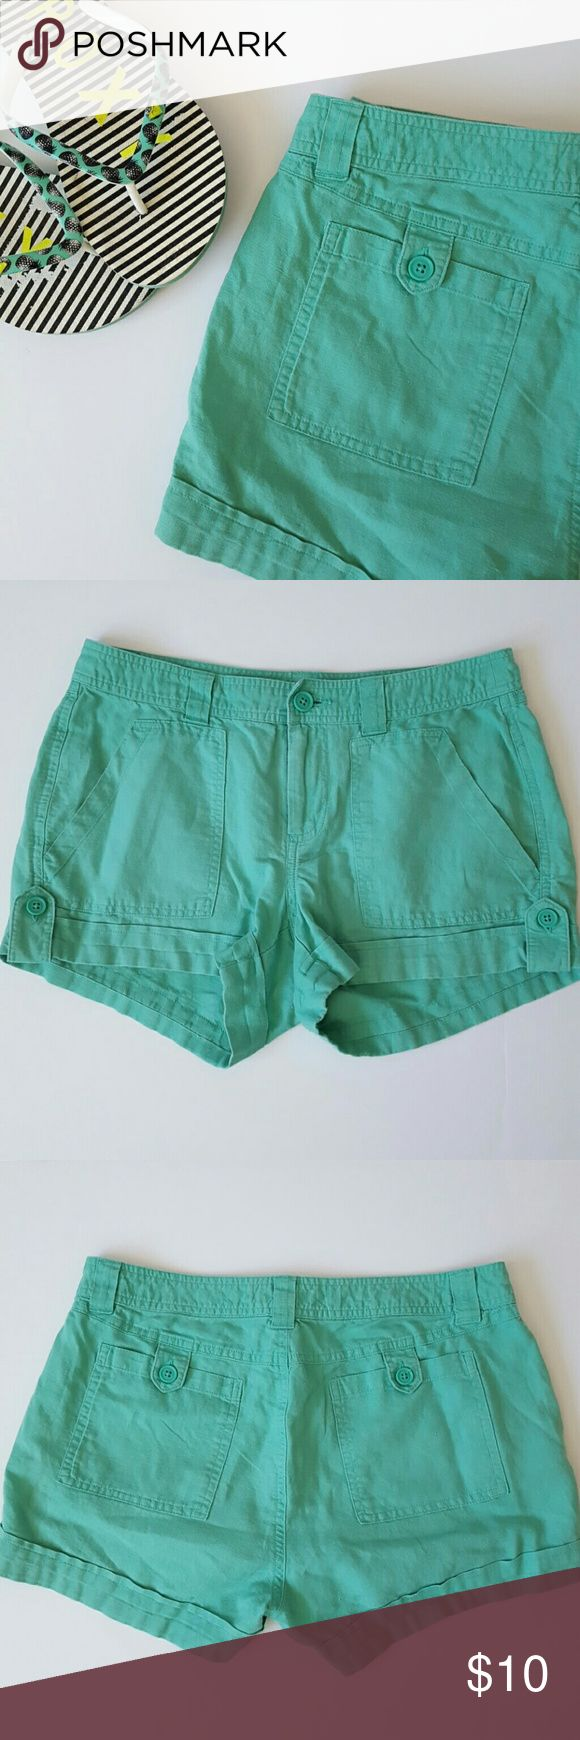 """Gap Mint Green Shorts Brand new listing! 3"""" inseam. Measures 10"""" from waist to hem in front. Good preloved condition. Gap Shorts"""